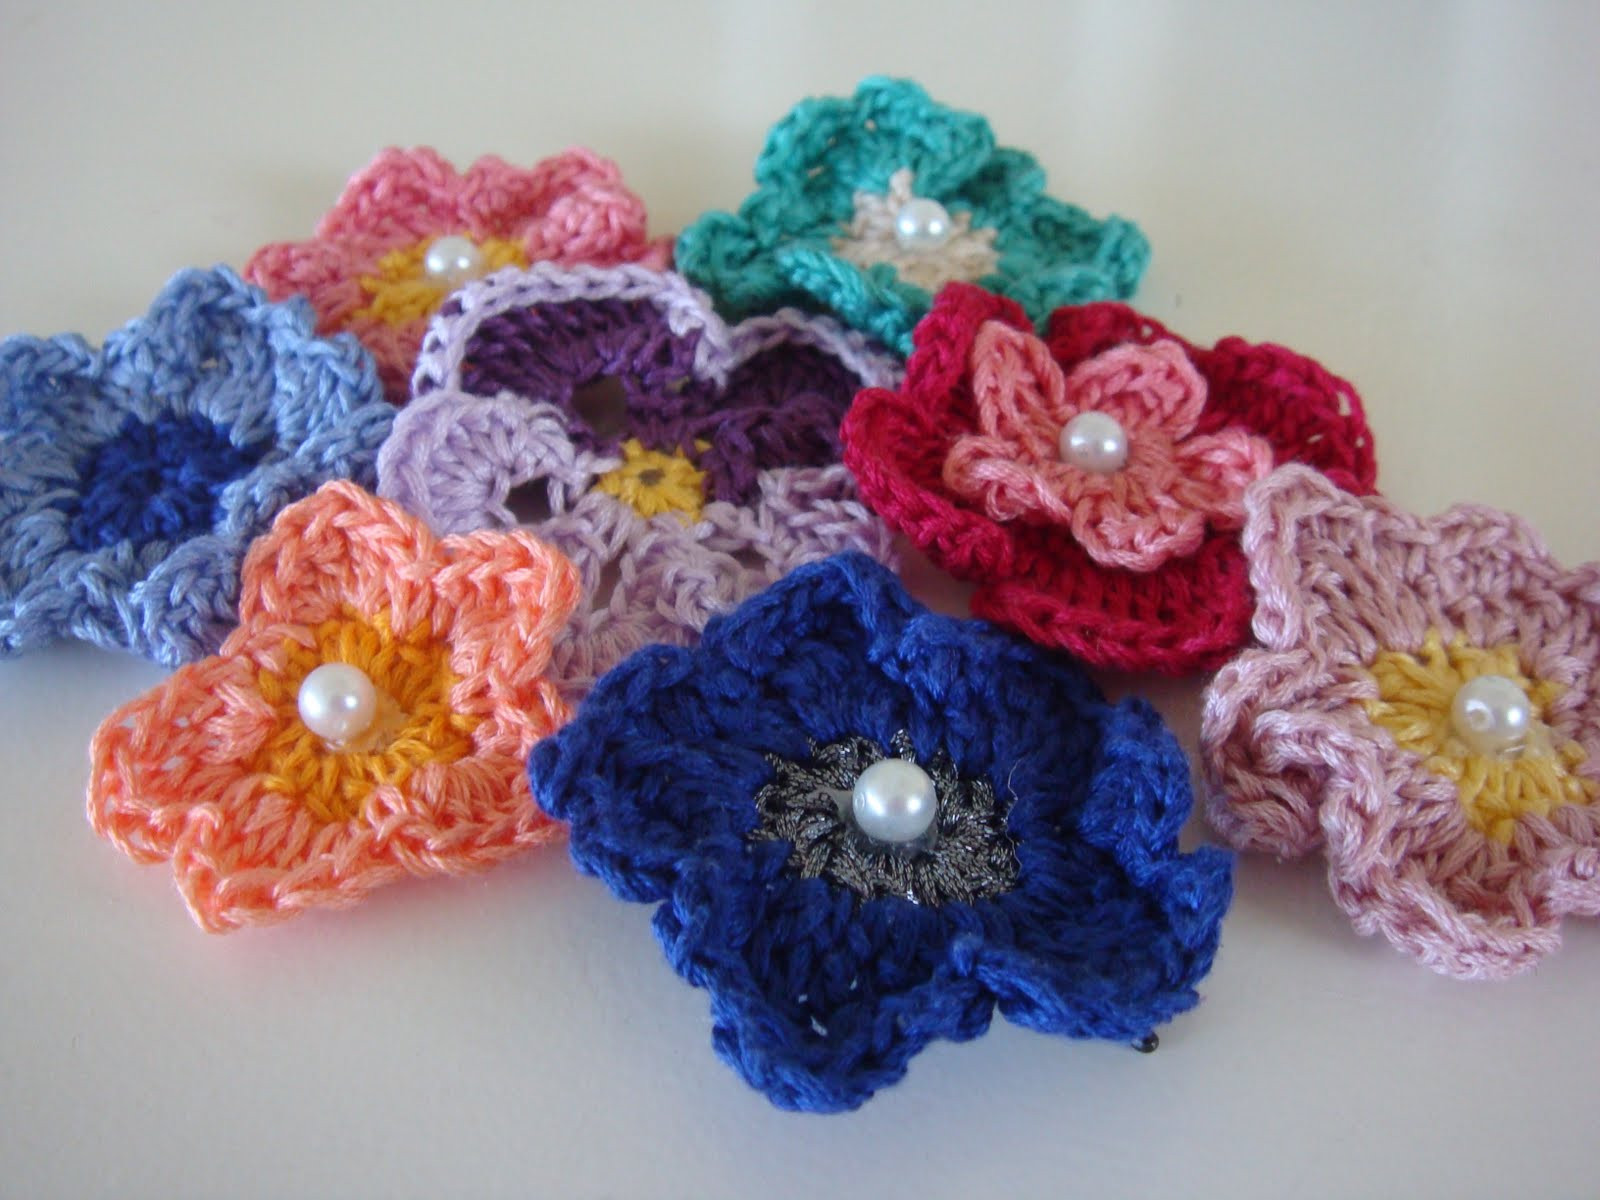 Crochet Accessories Beautiful Recycled Diy Crochet Hair Accessories Of New 47 Photos Crochet Accessories